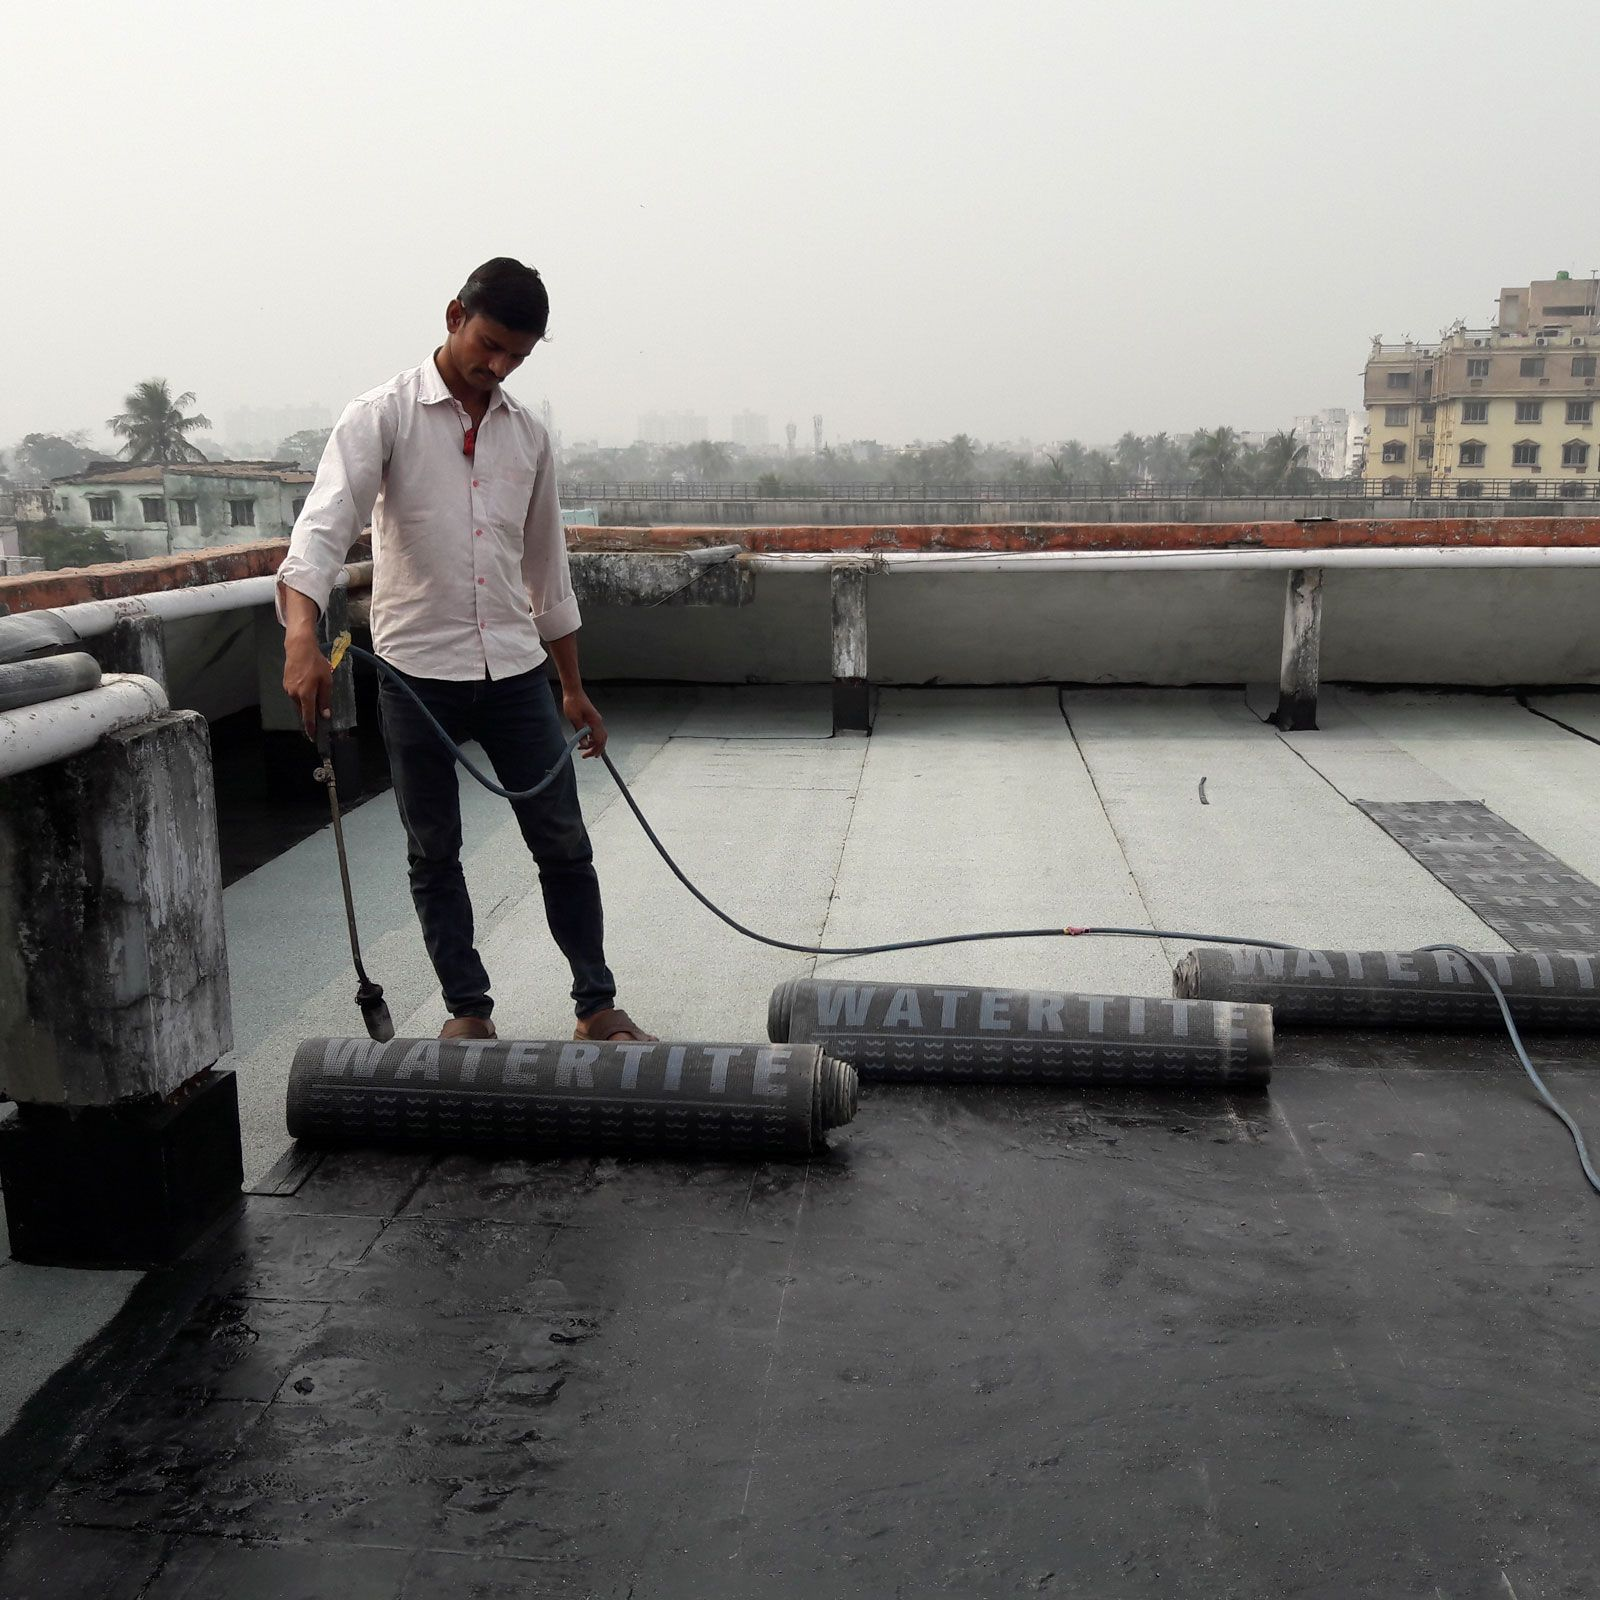 We At Alexextrusions Are Specialised In The Application Of High Quality Waterproofing Systems Waterproofing W Damp Proofing Waterproofing Basement Leak Repair